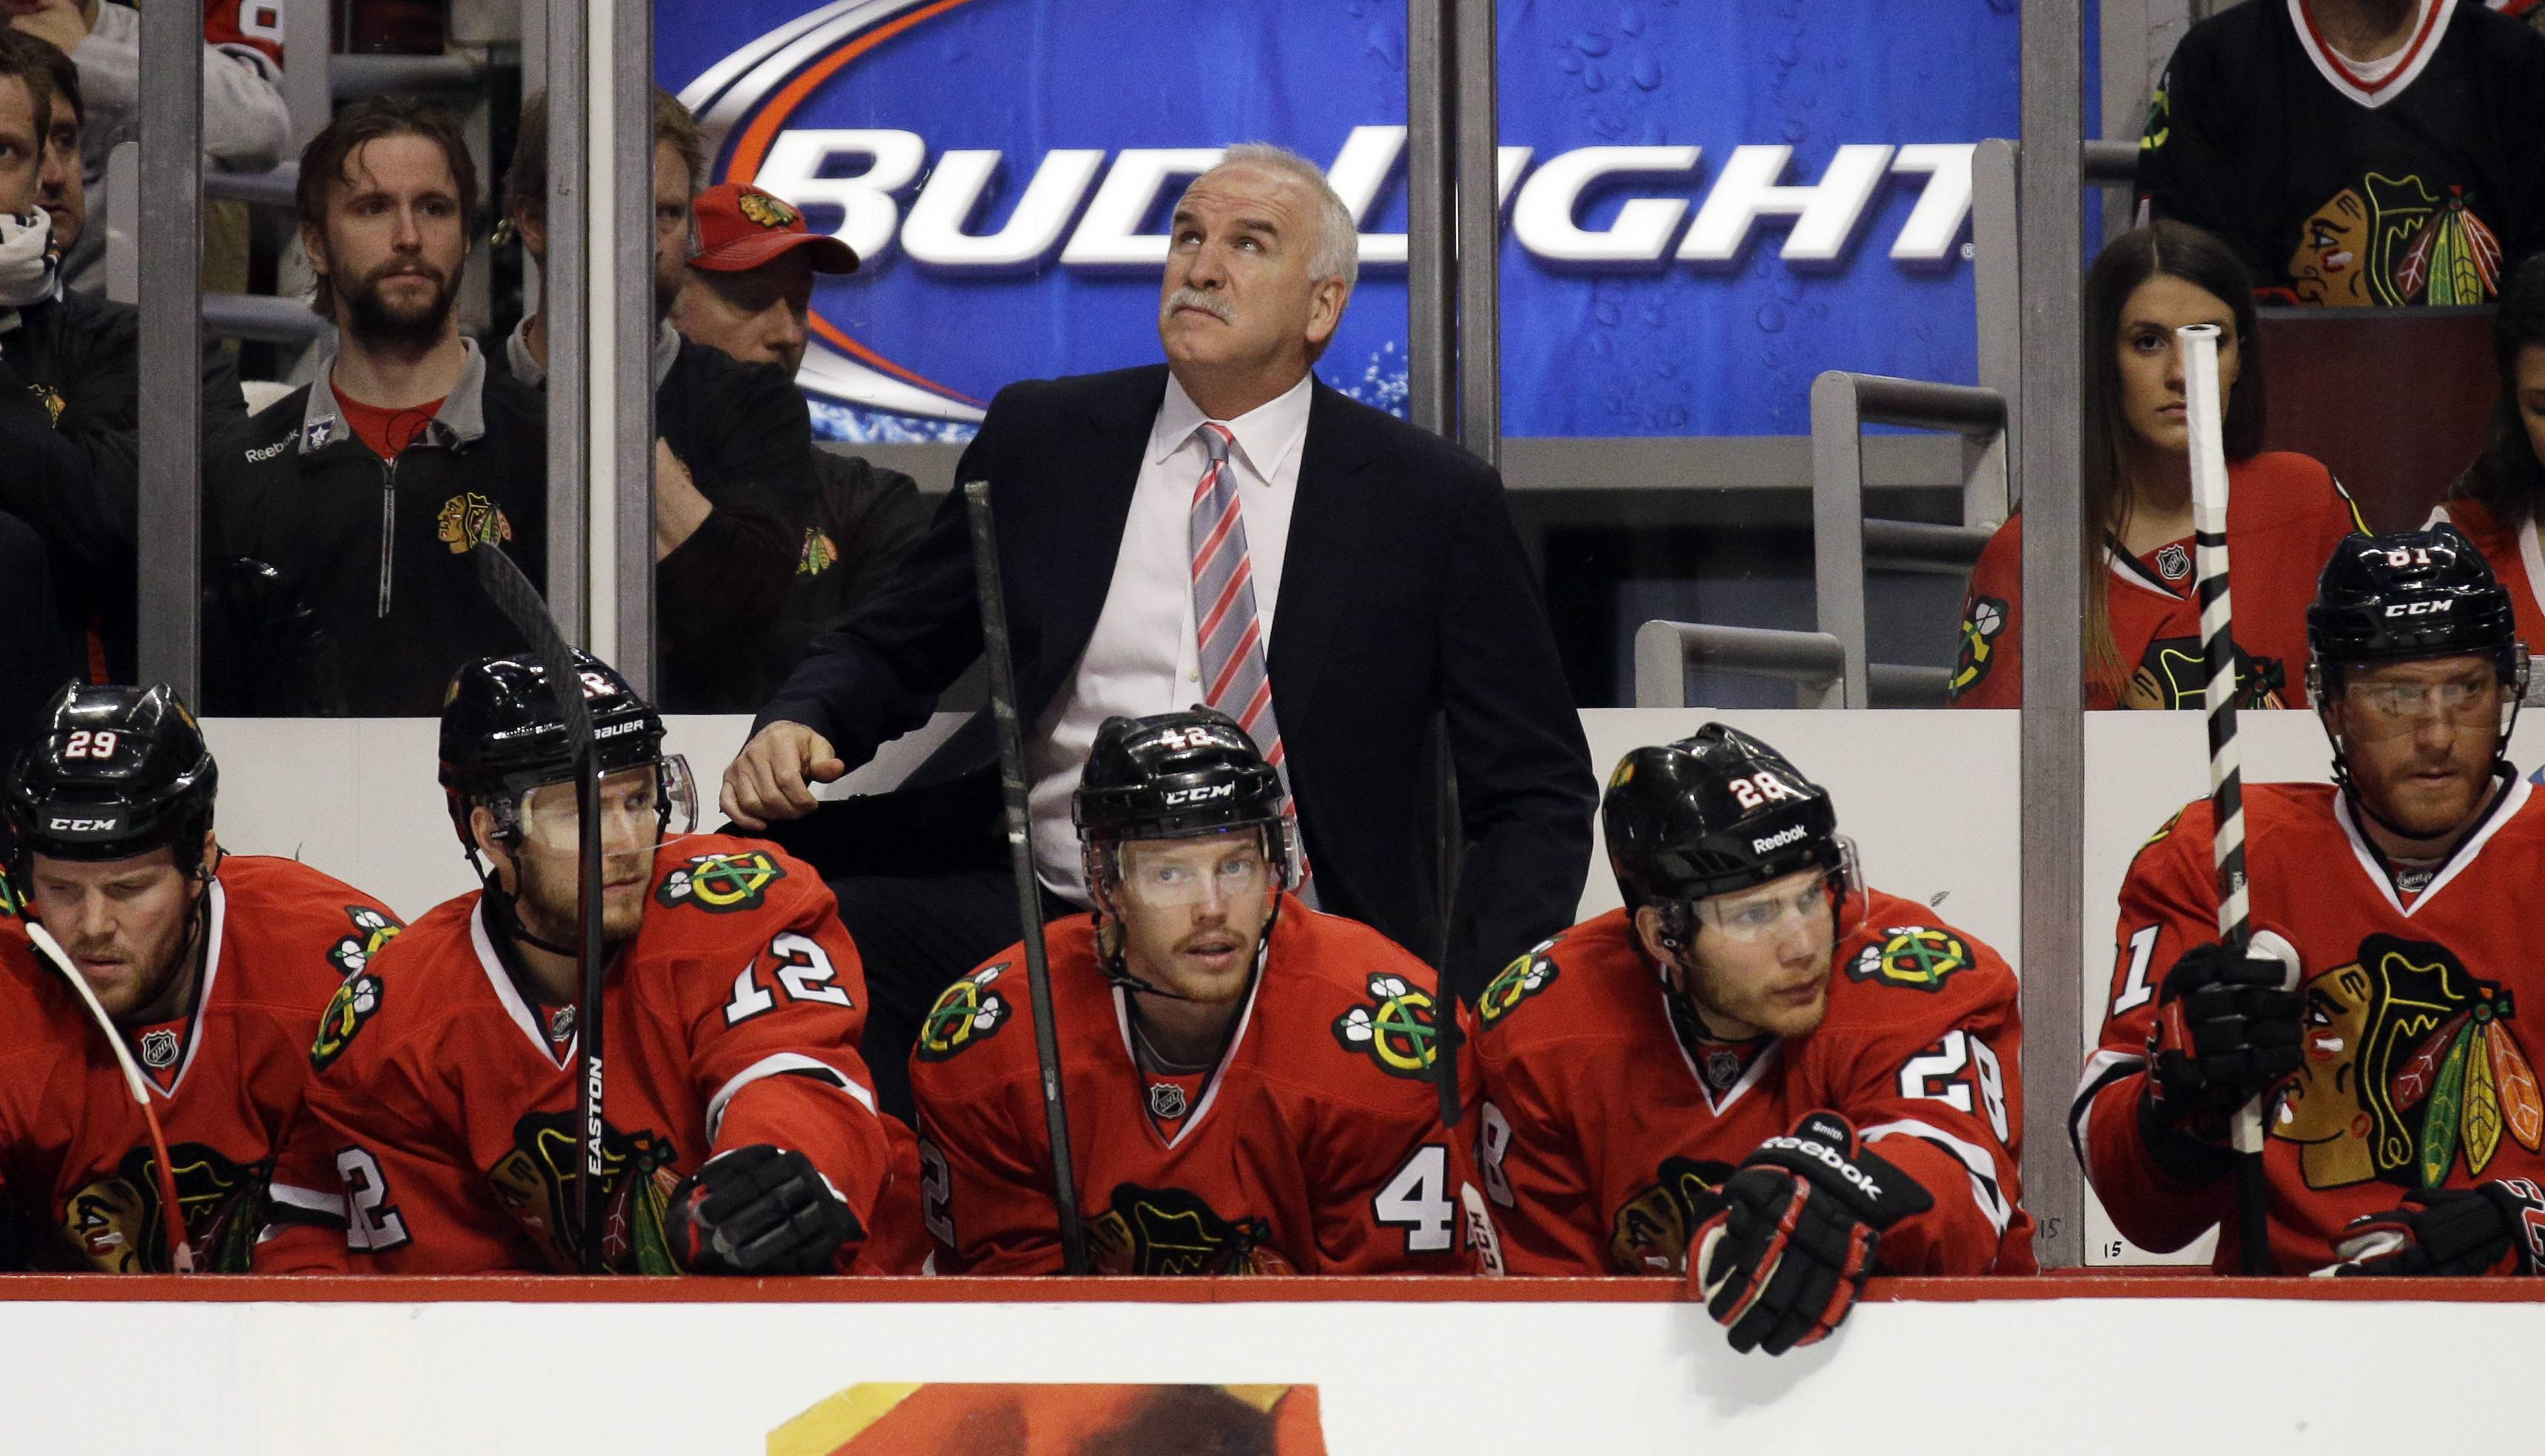 Chicago Blackhawks head coach Joel Quenneville looks up the score board during the first period  in Game 5 of an NHL hockey second-round playoff series against the Minnesota Wild in Chicago,Sunday, May 11, 2014. The Blackhawks won 2-1.